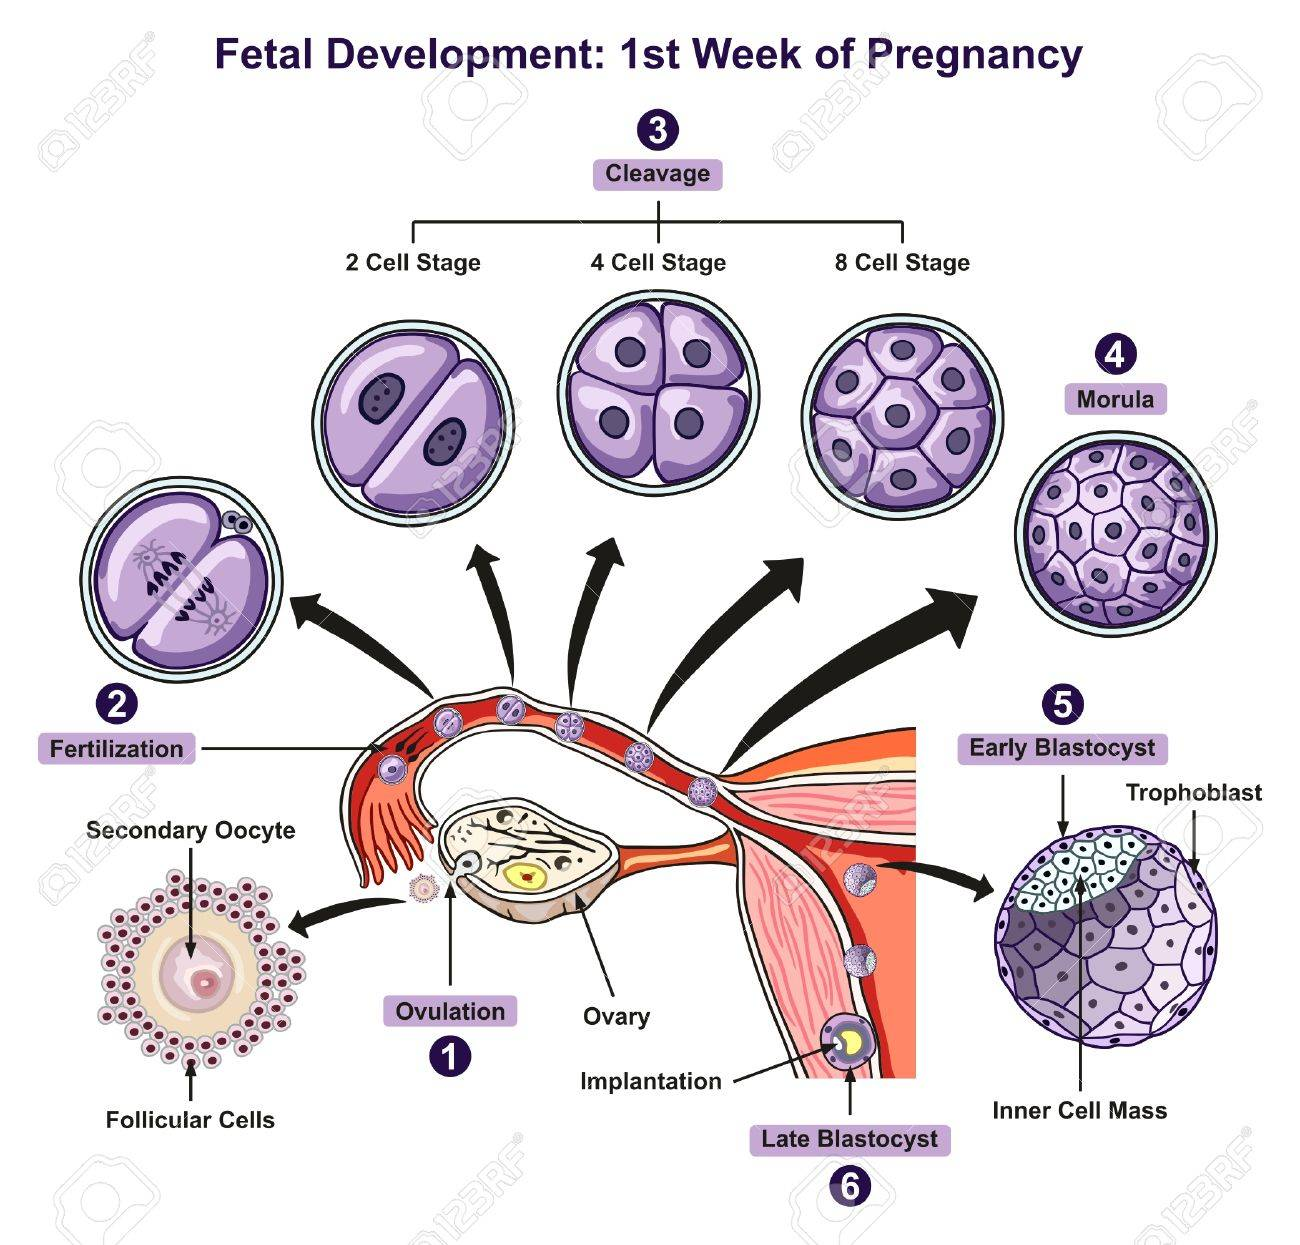 Fetal Development First Week Of Pregnancy Infographic Diagram ...